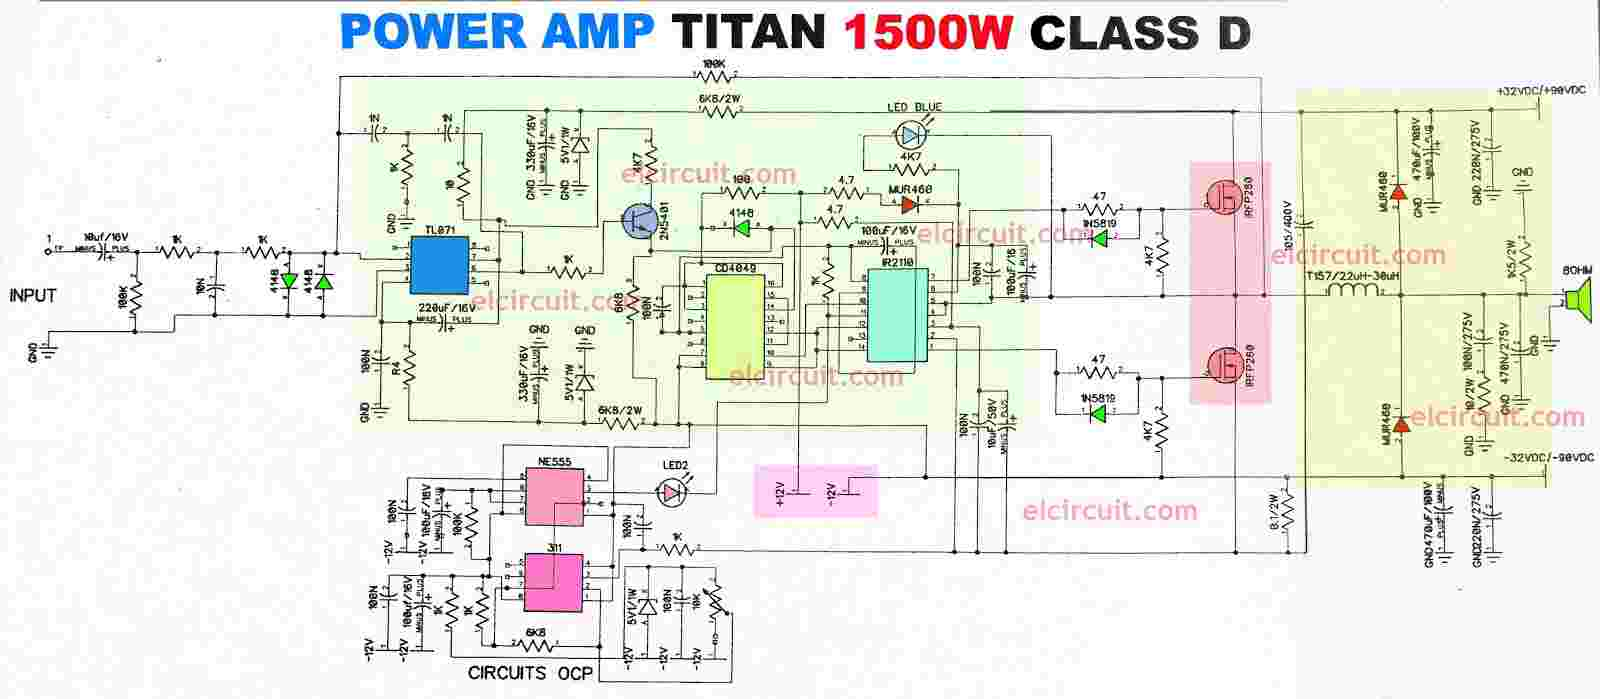 Audio Circuit Diagram Pdf All Kind Of Wiring Diagrams Ups 500w Power Amplifier 1500w Class D Ir2110 Cd4049 Electronic Symbols